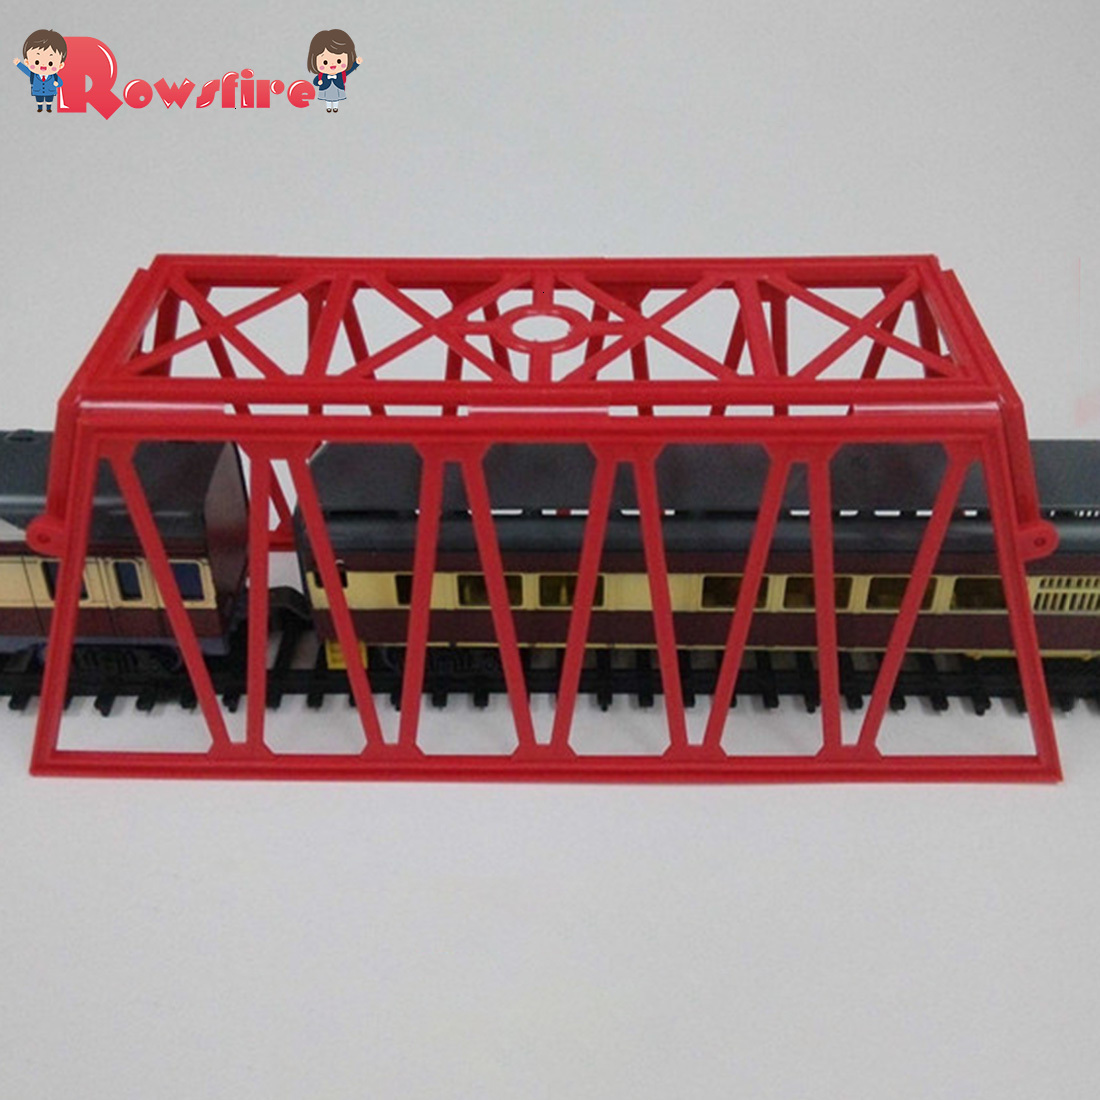 1:87 HO Scale Railway Scene Decoration Bridge Network Model For Sand Table Building - Red